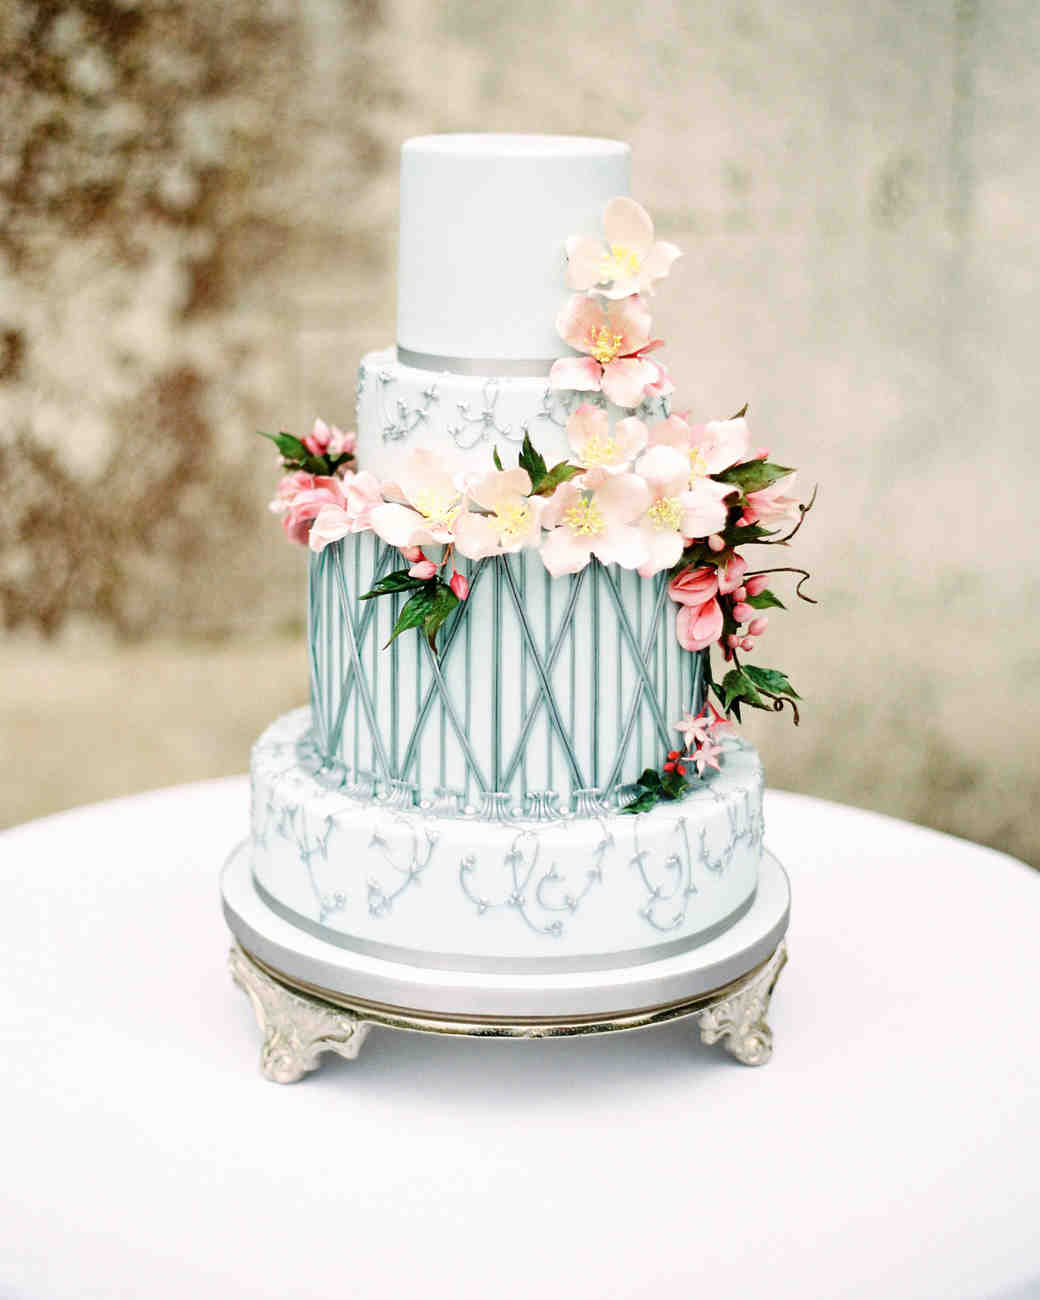 25 Wedding Cake Design Ideas That Ll Wow Your Guests Martha Stewart Weddings